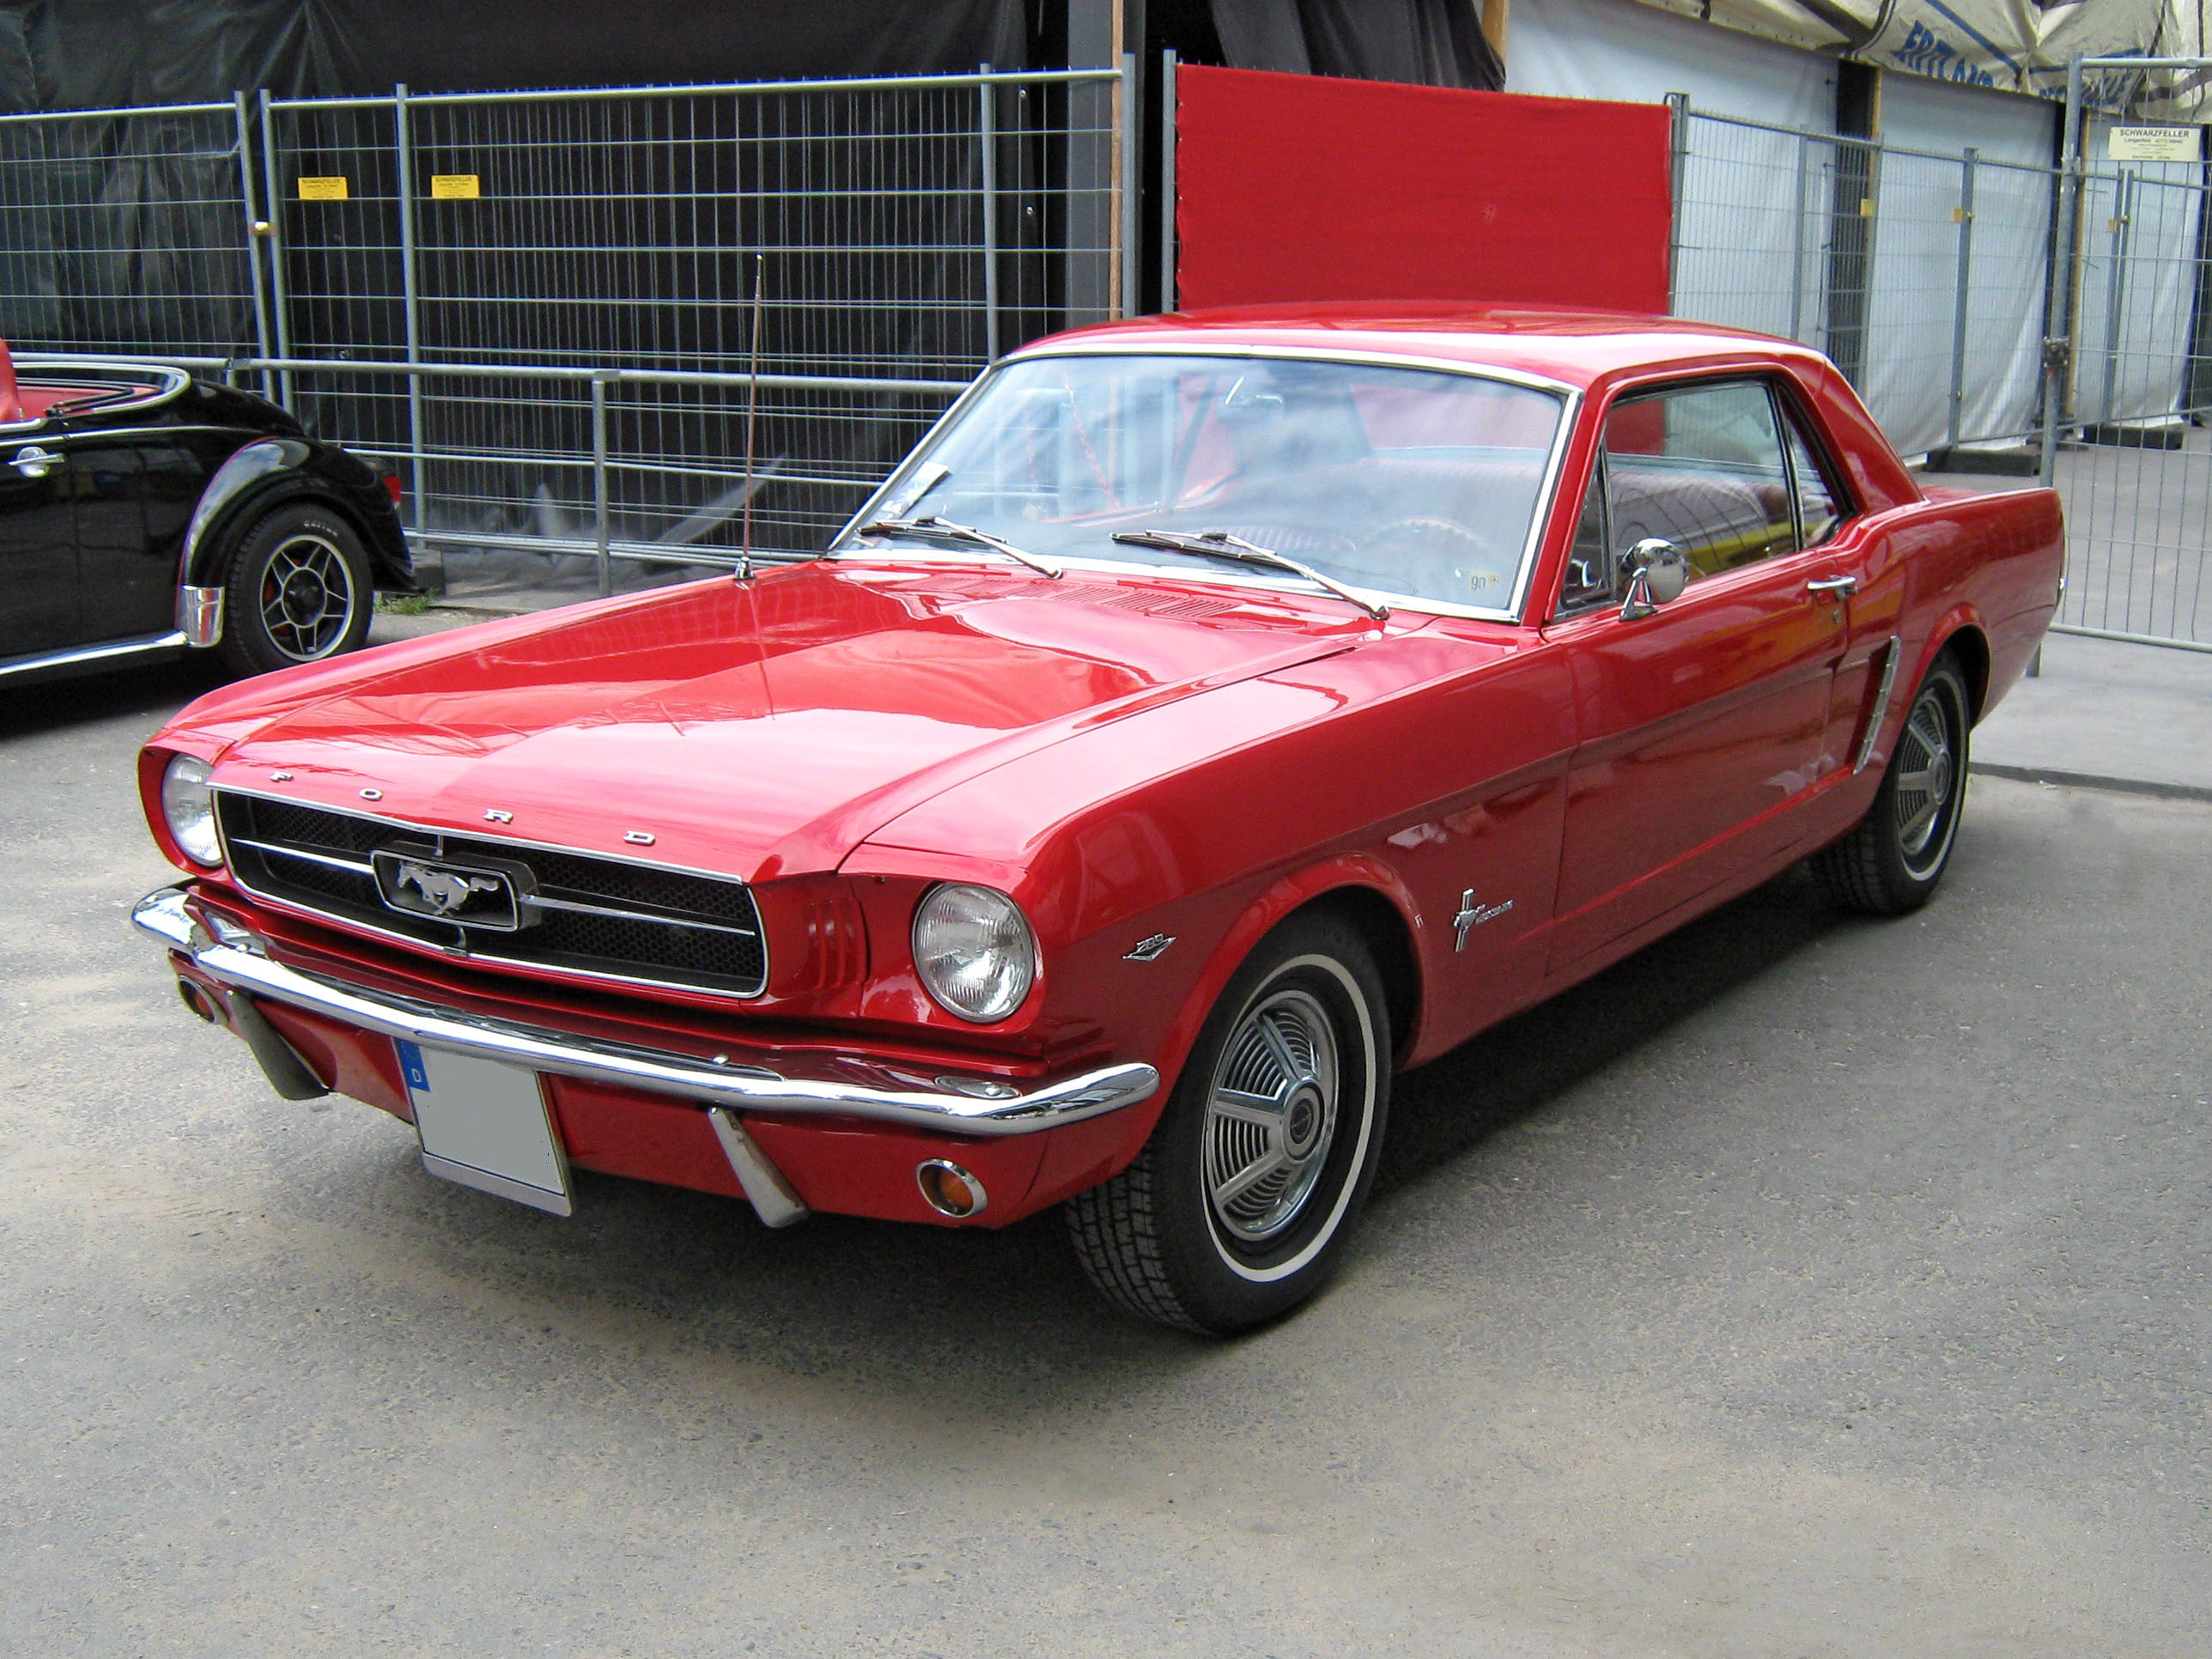 Mustang Parts Deals Page 47 Mustang Parts Bargains